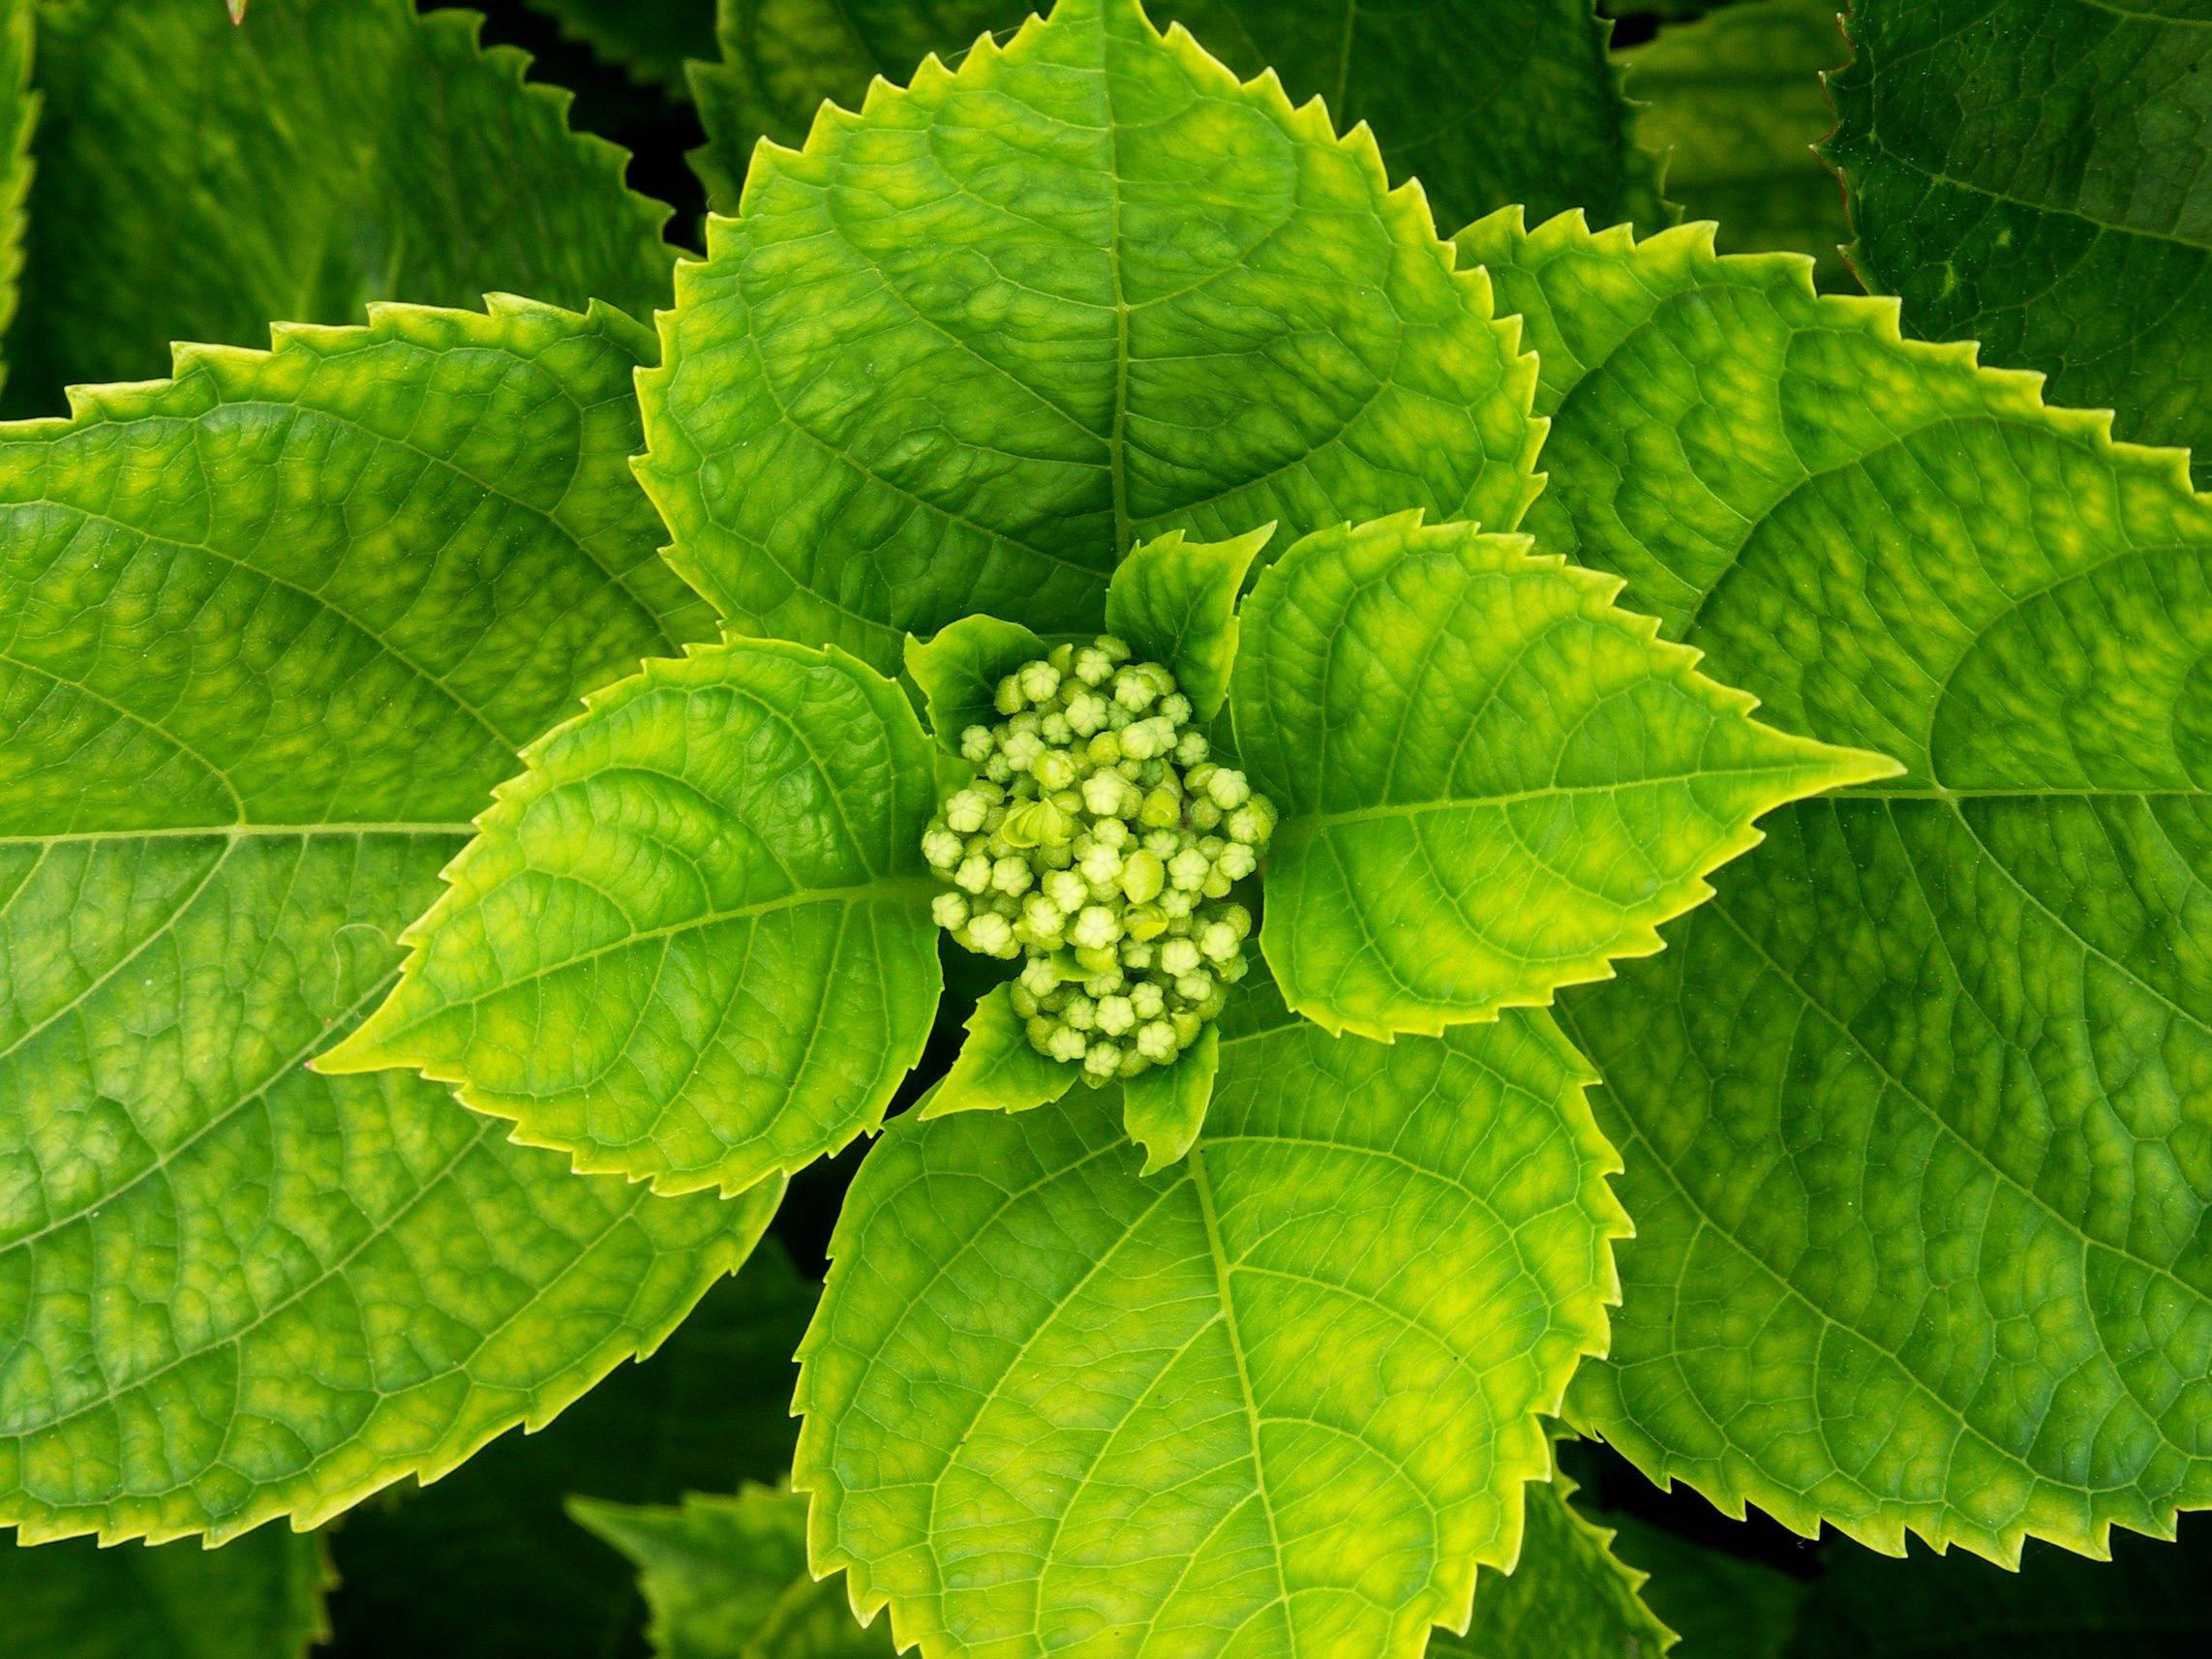 Young Inflorescences [In the Bud-stage] of Hydrangea macrophylla